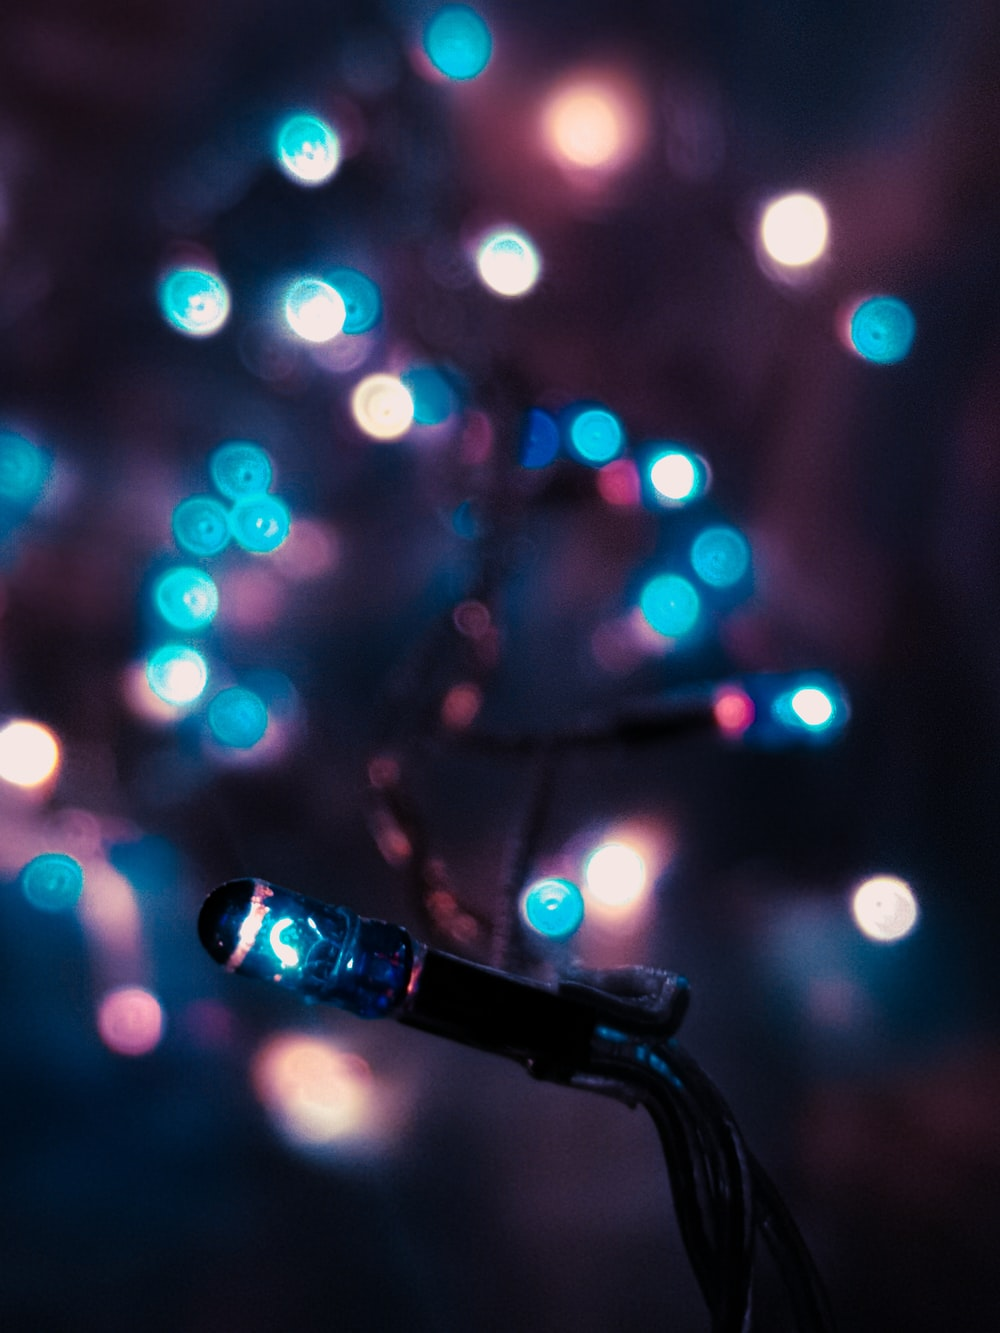 black microphone with lights in bokeh photography